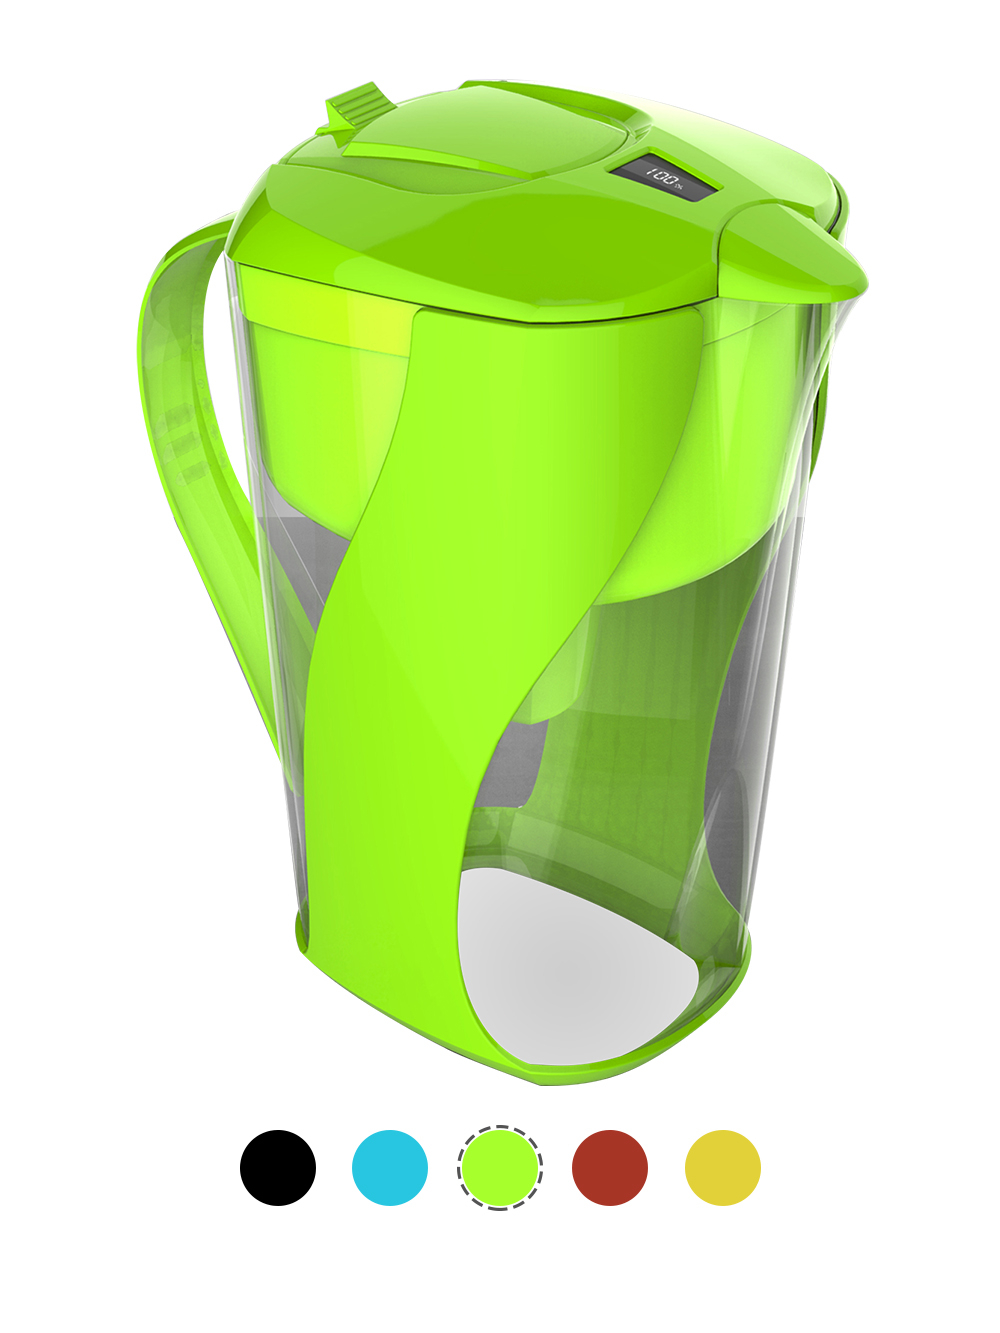 aok-109-new-alkaline-water-jug-3.jpg